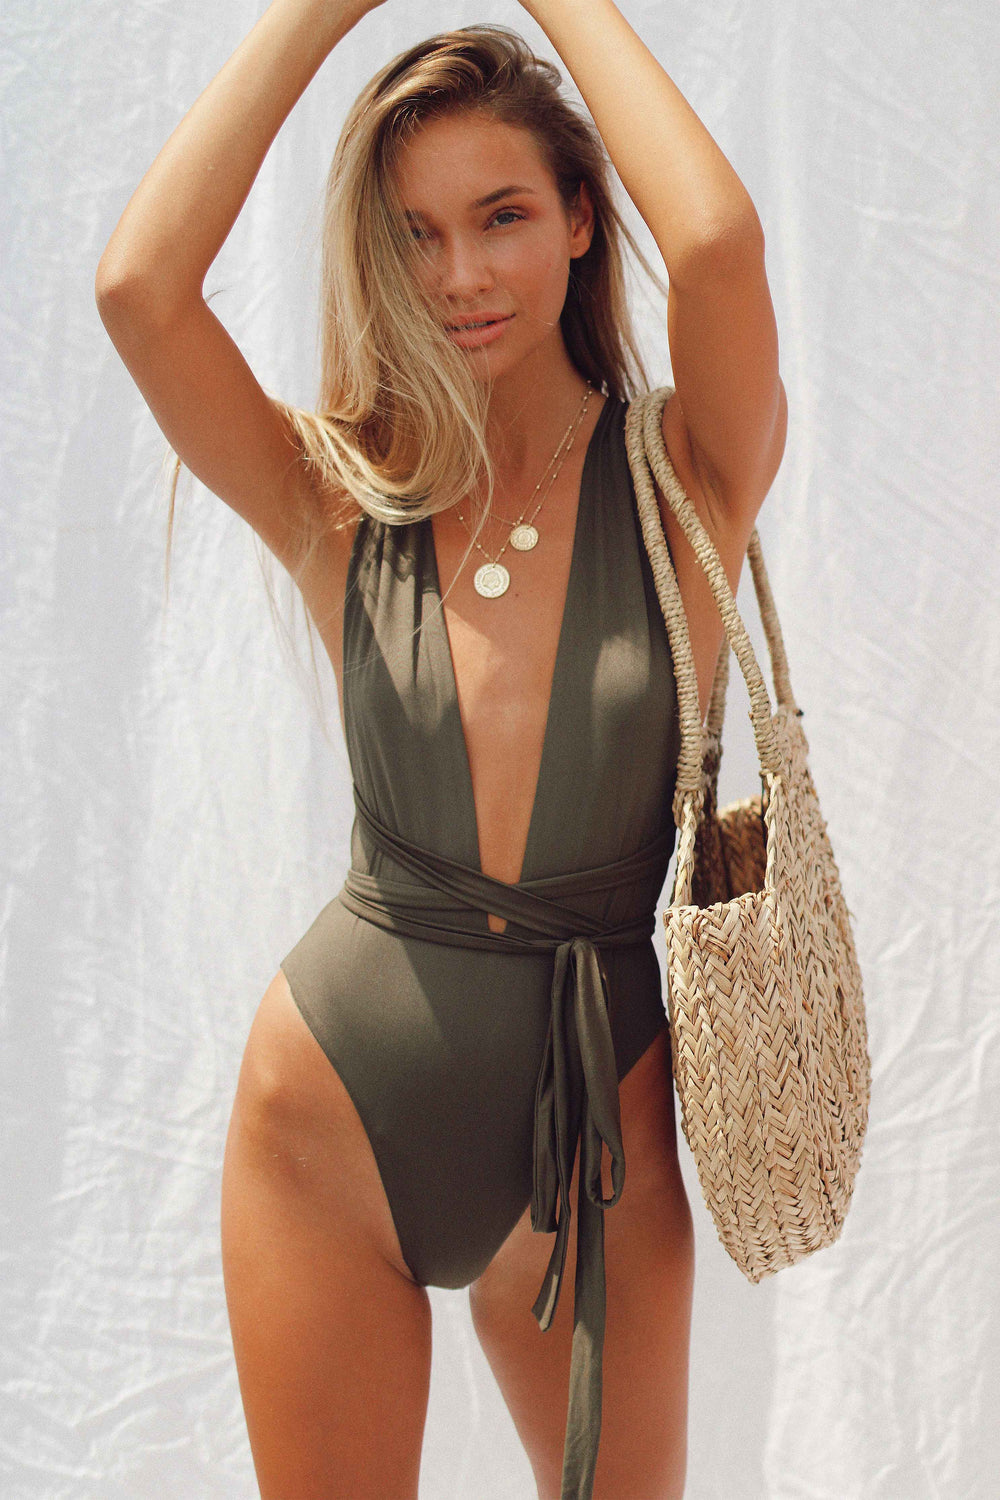 MALLORCA SWIMSUIT - Chic Le Frique